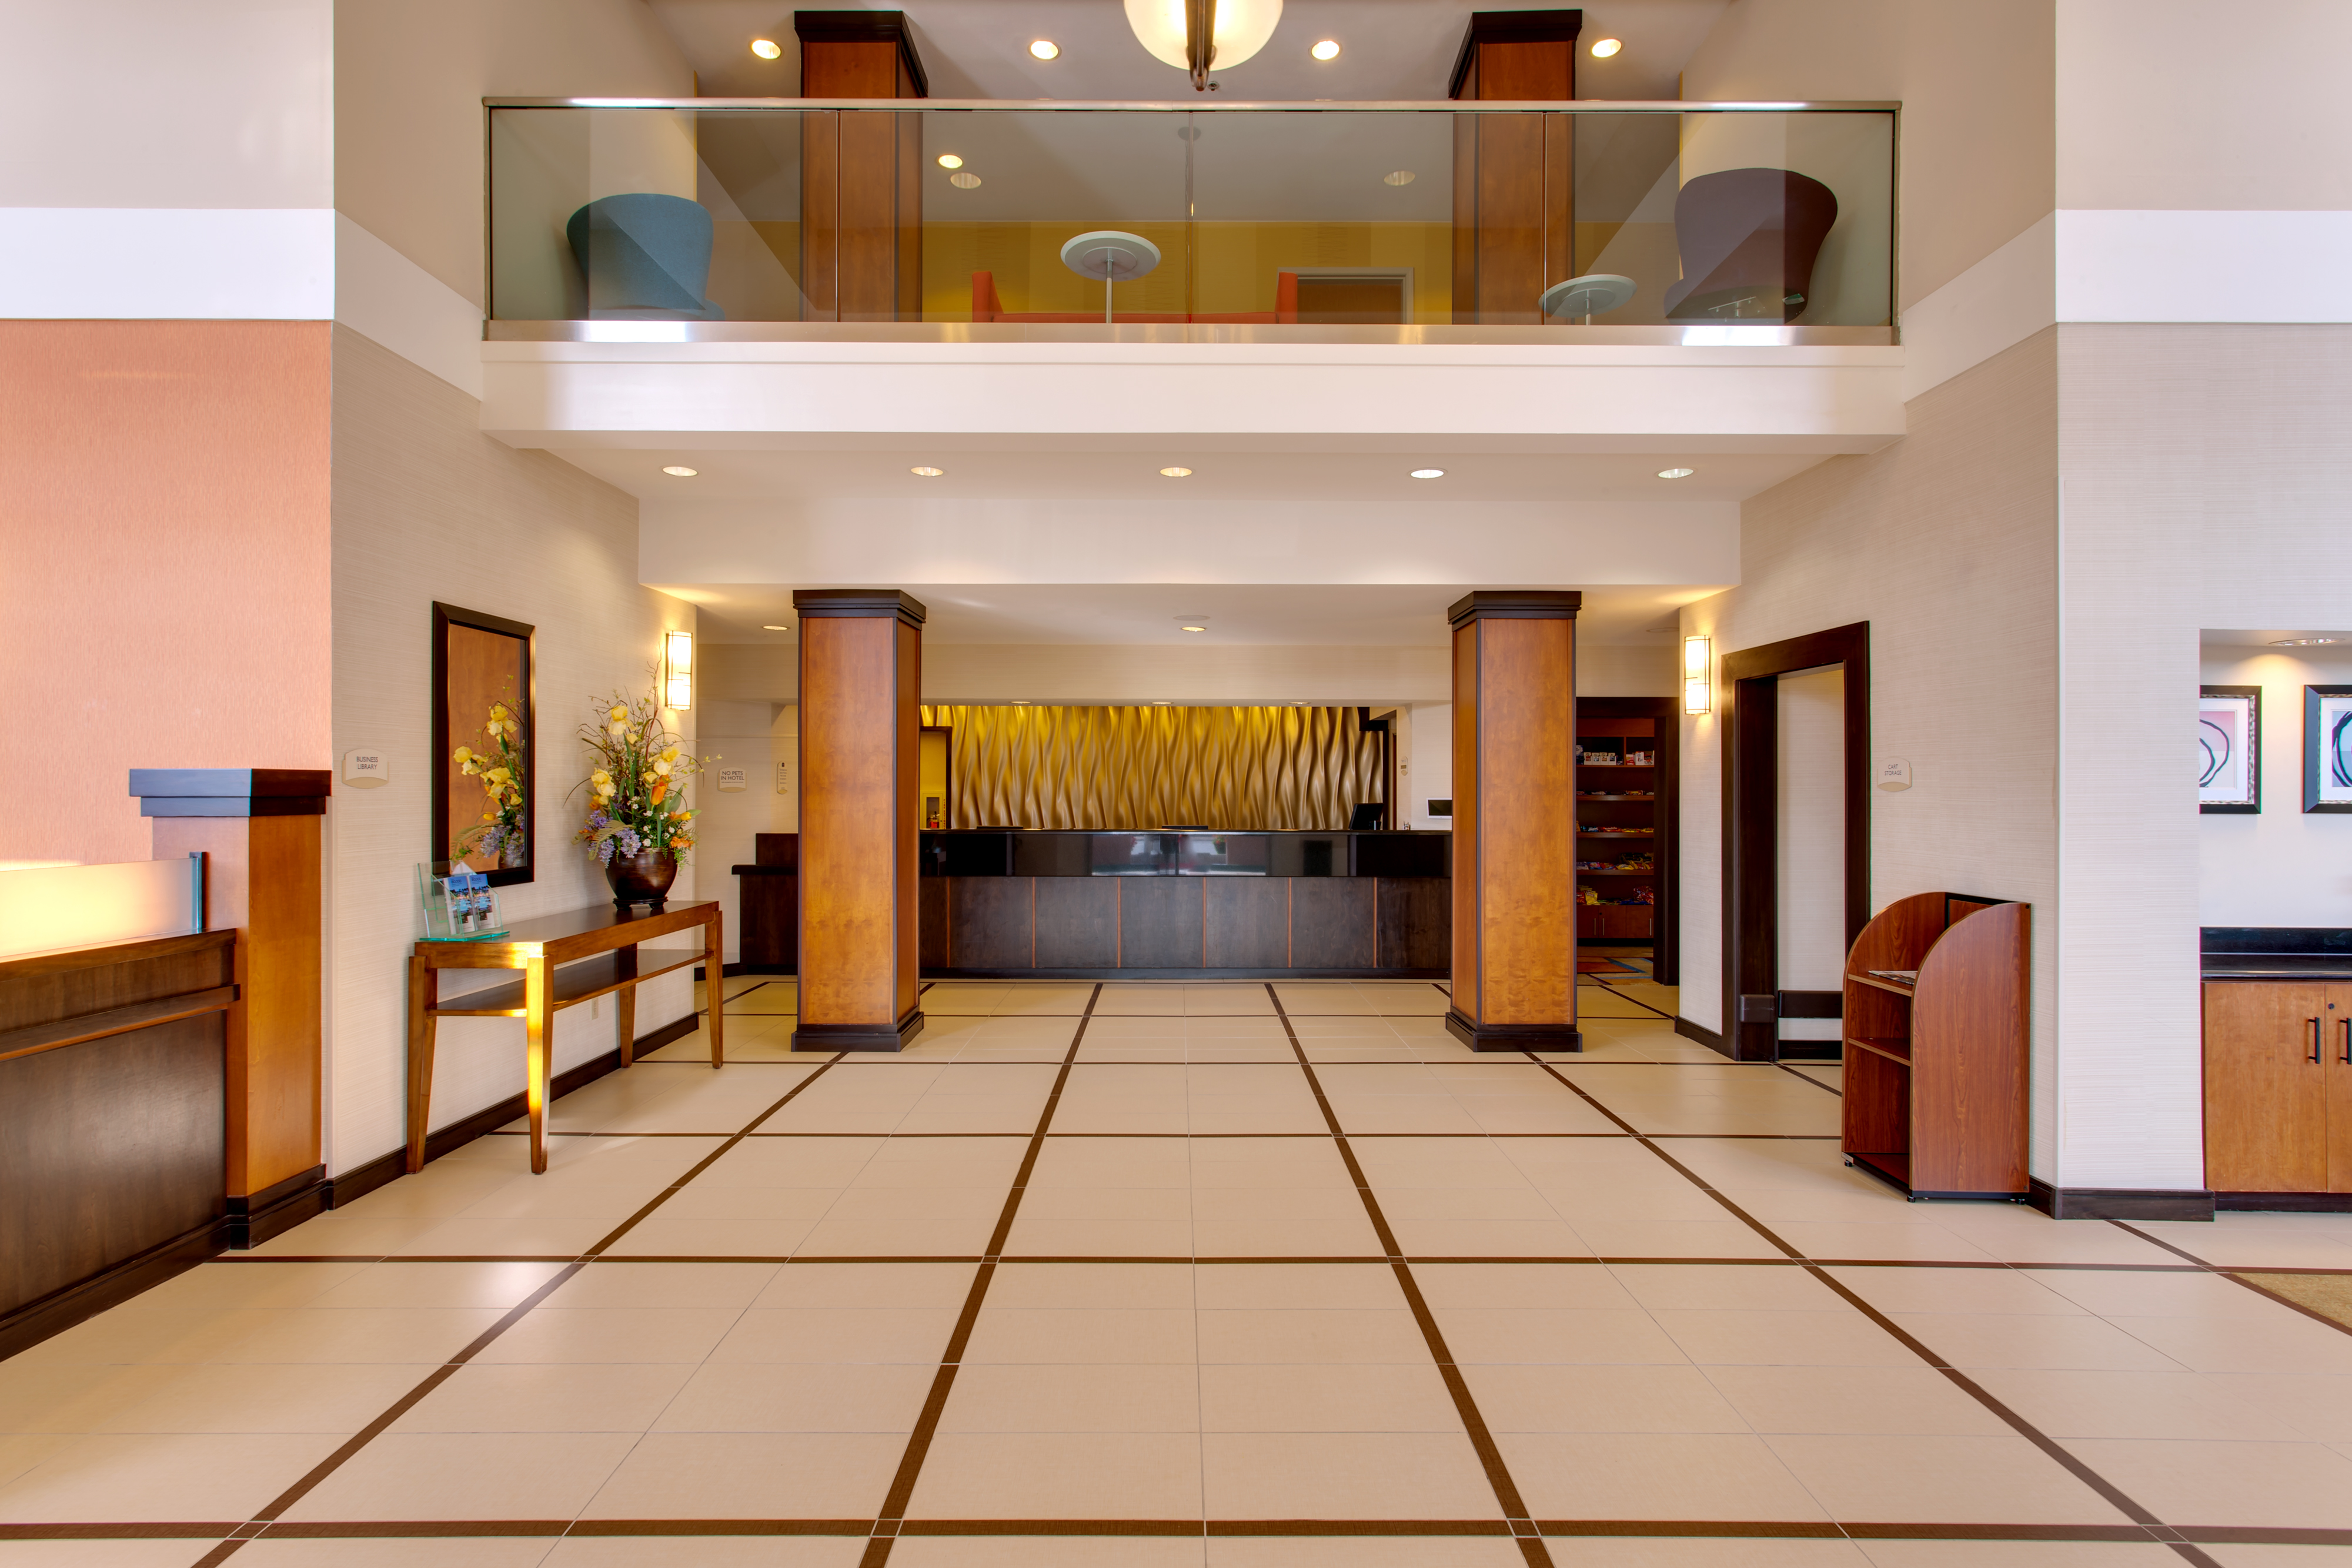 https://www.hotelsbyday.com/_data/default-hotel_image/1/6268/sfome-lobby-entry-view.jpg